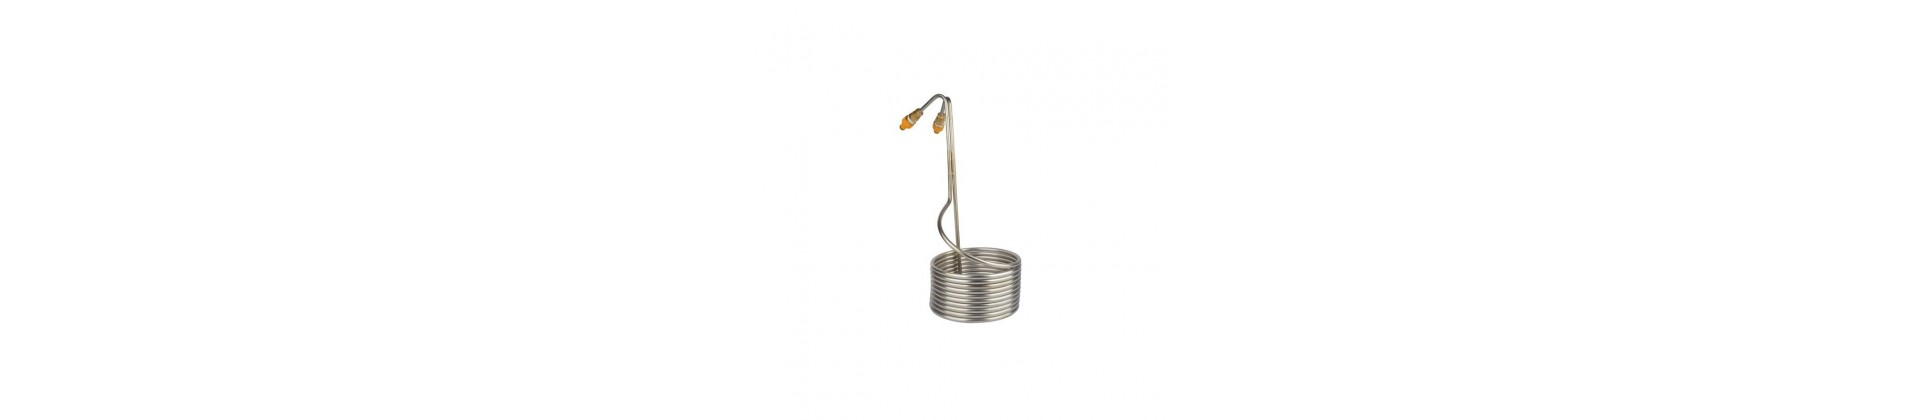 Stainless steel coil chiller